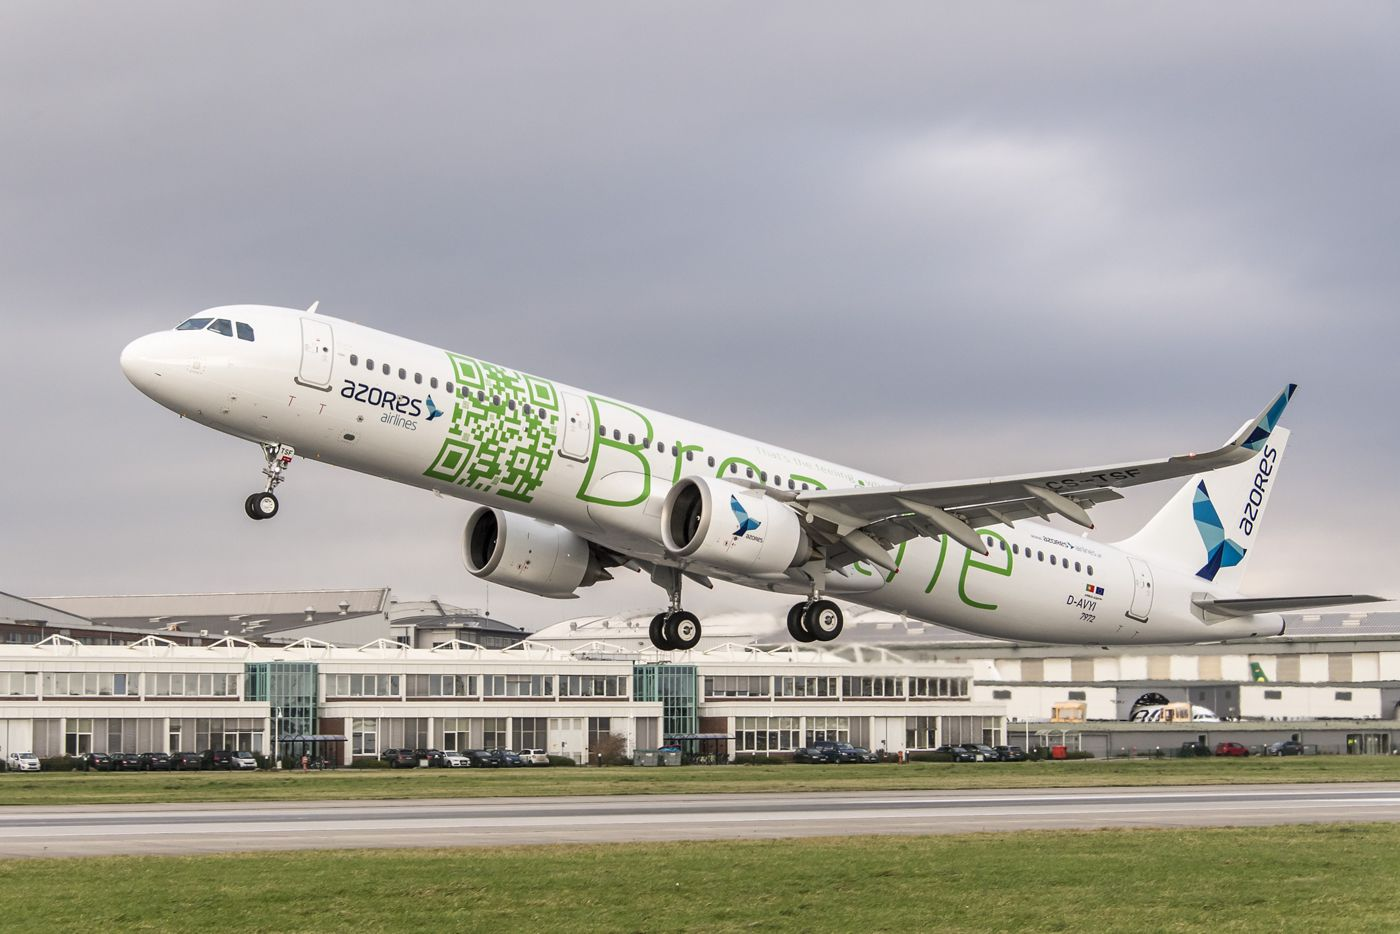 Azores Airlines takes delivery of its first A321neo